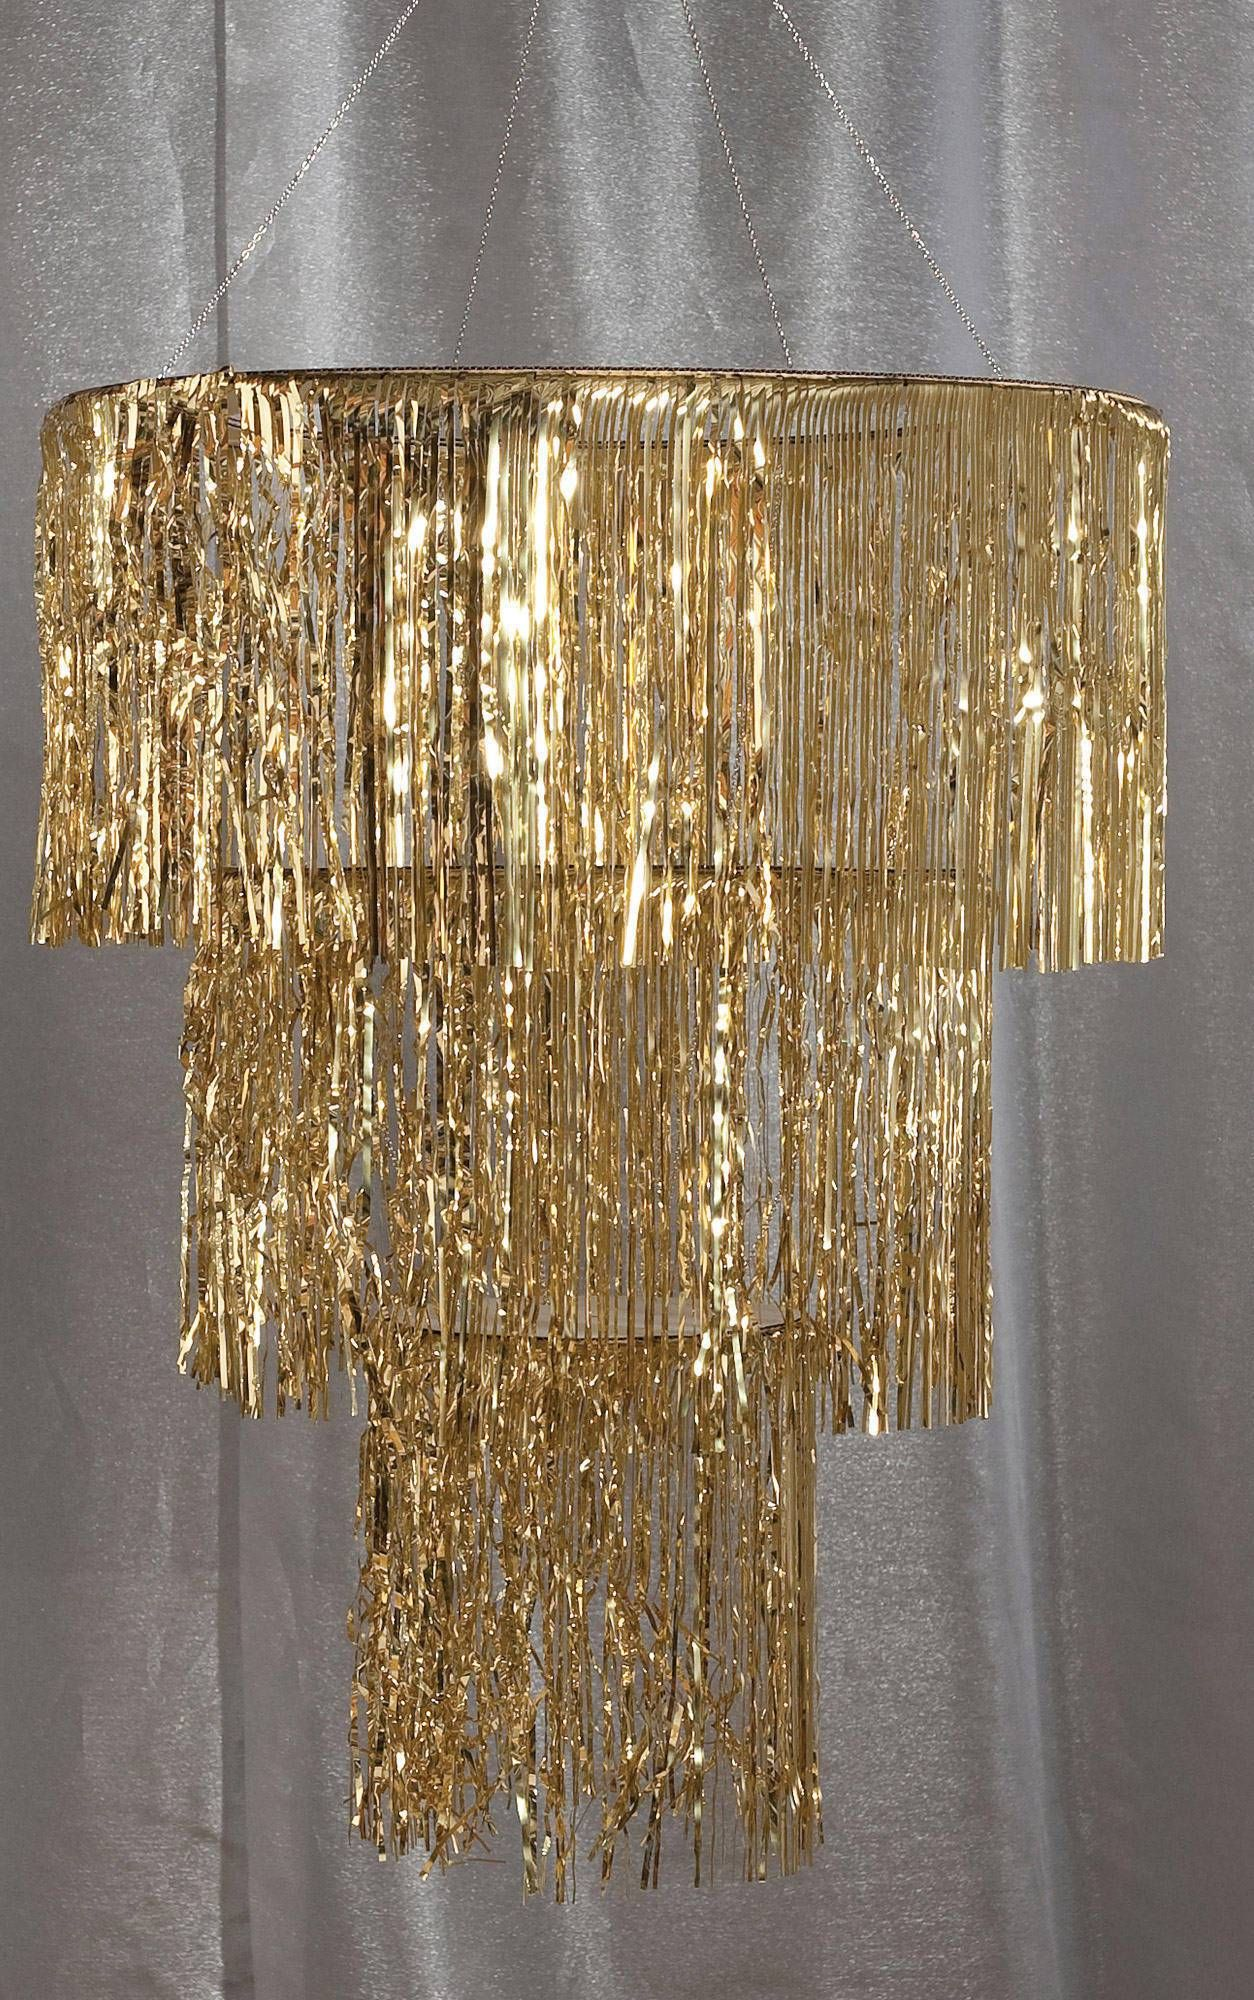 Roaring twenties great gatsby party ideas gatsby party gatsby gold three tier chandelier aloadofball Images